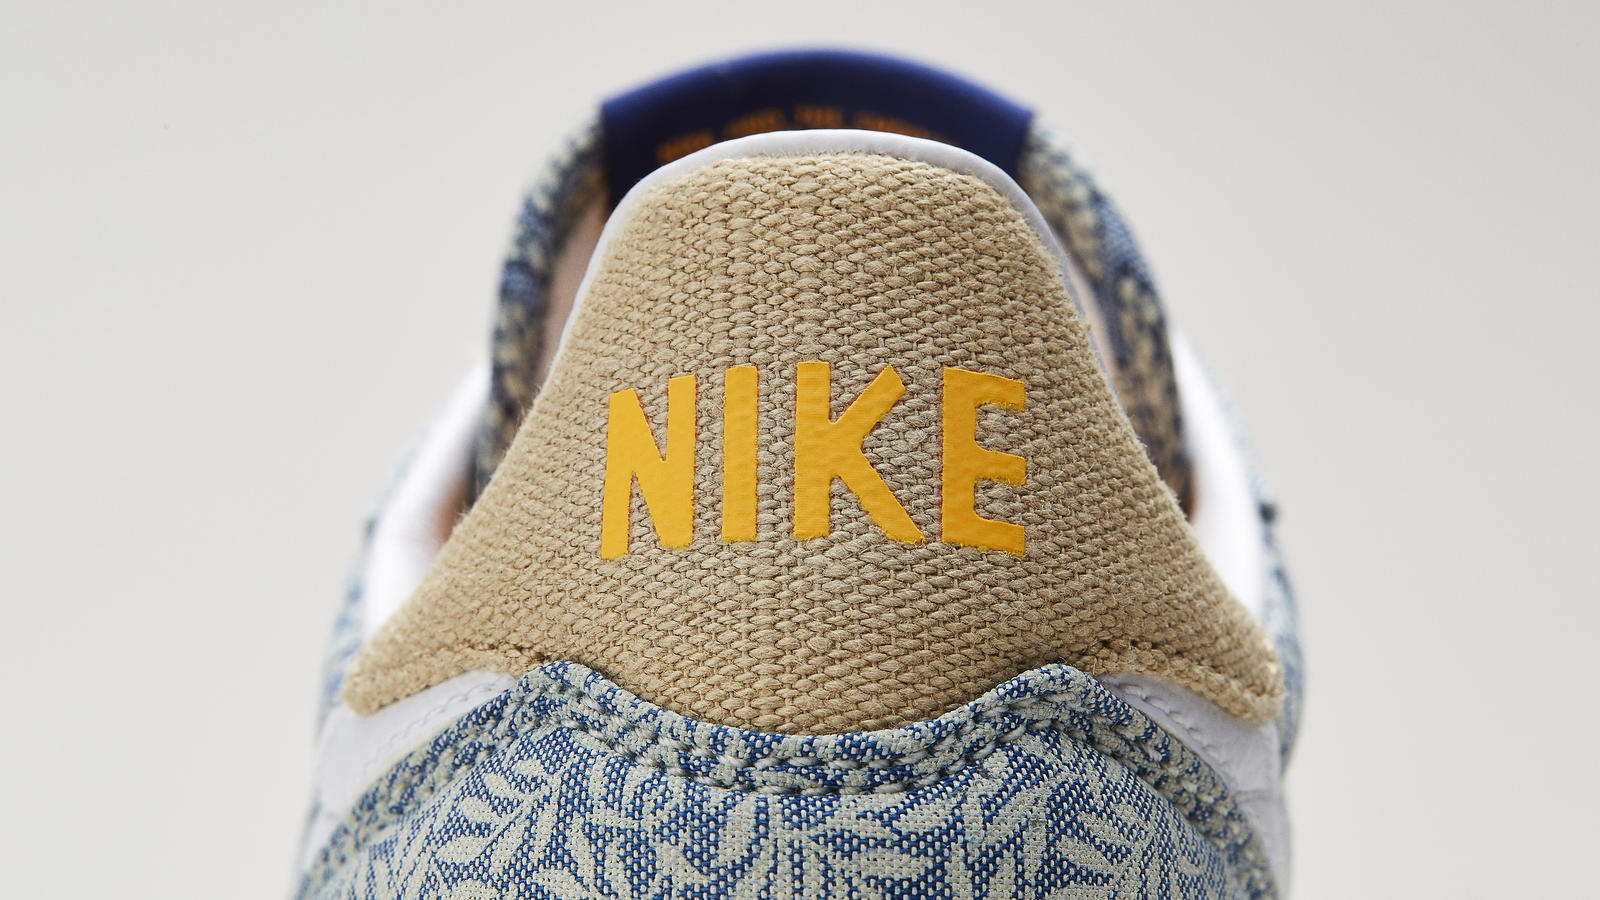 nikexlibertysu14internationalistheel